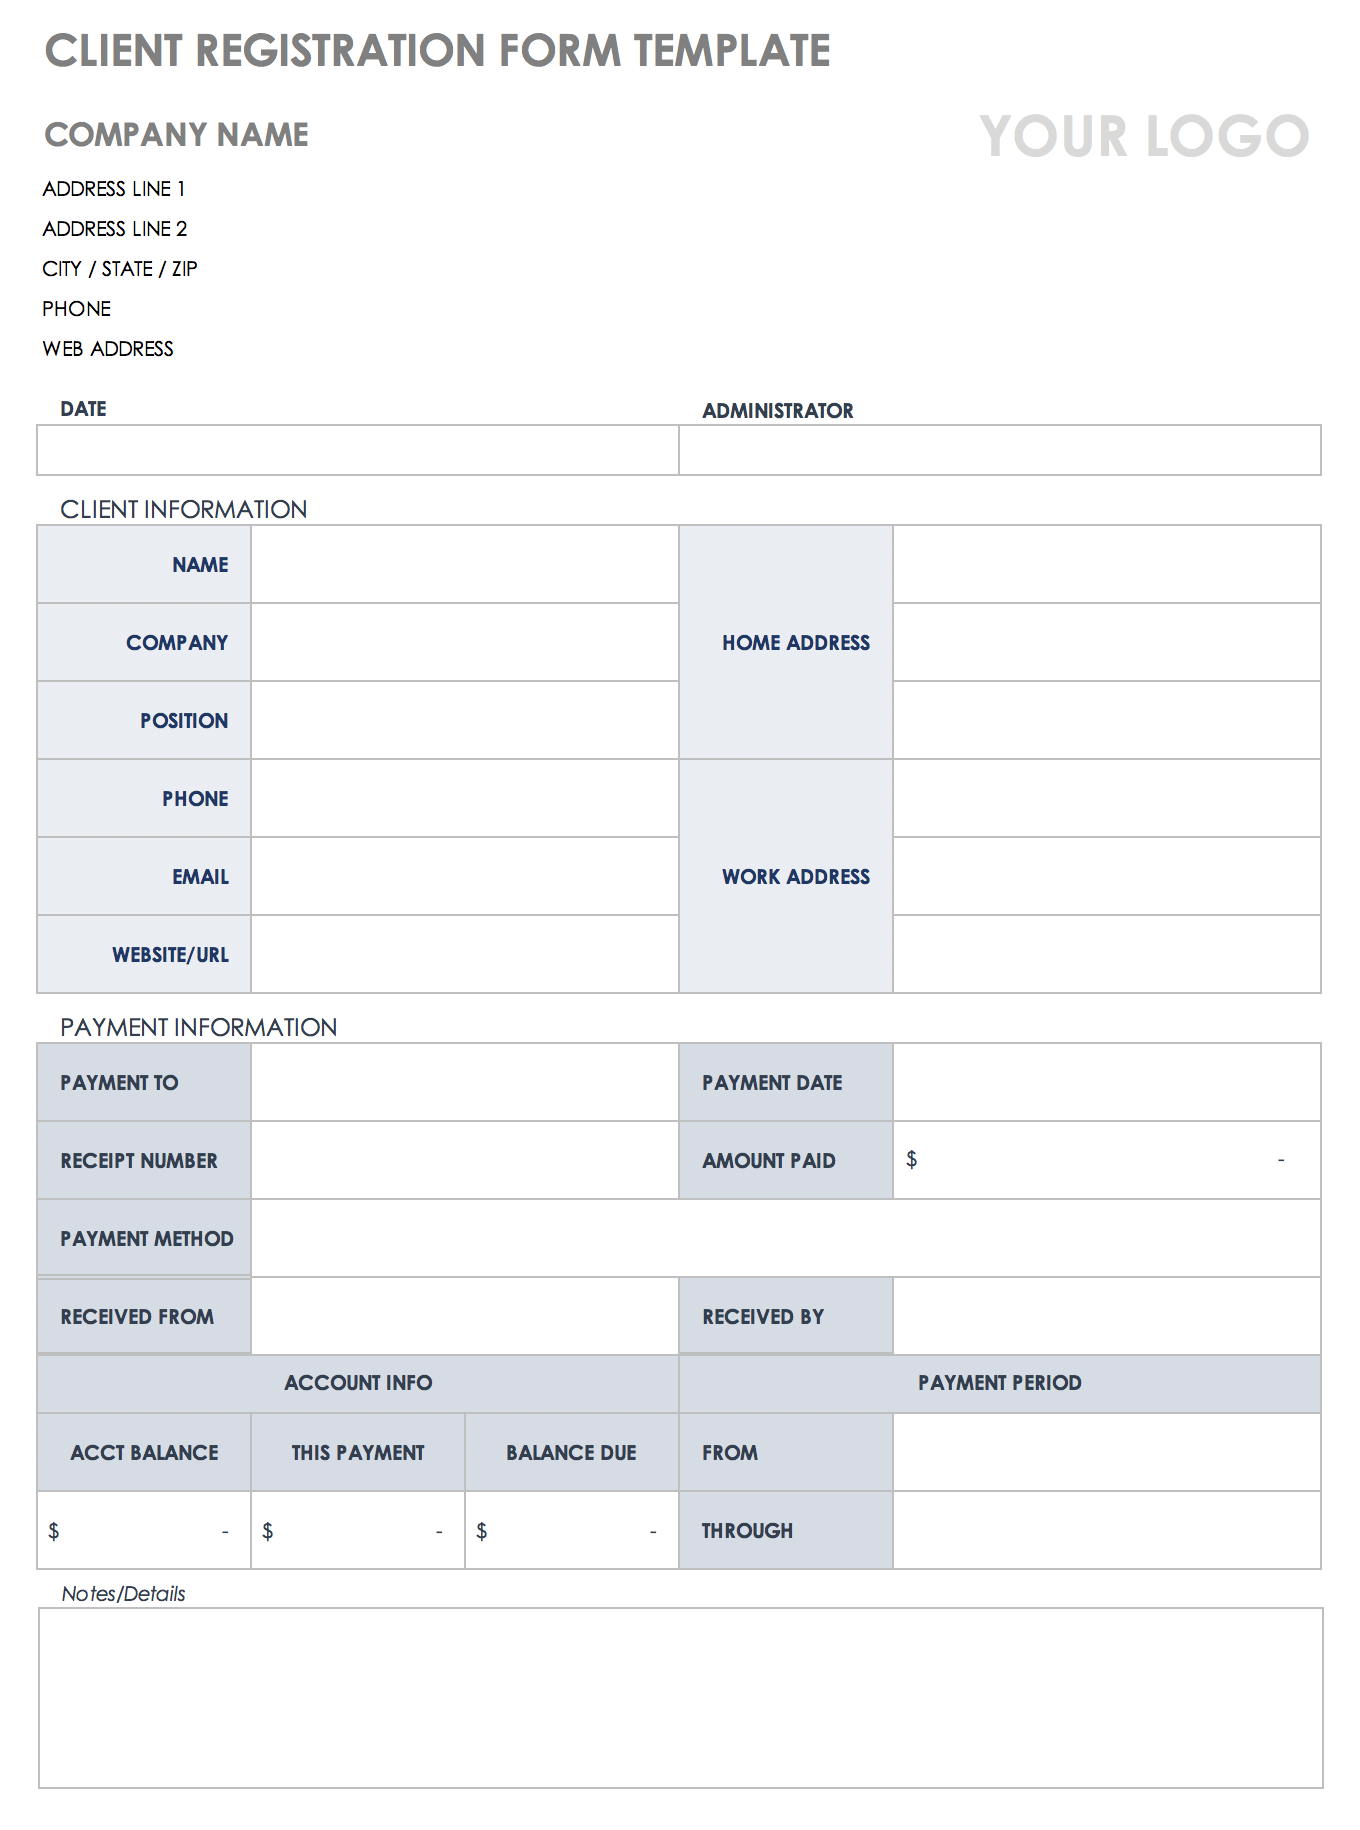 Free Client Information Forms Templates Smartsheet